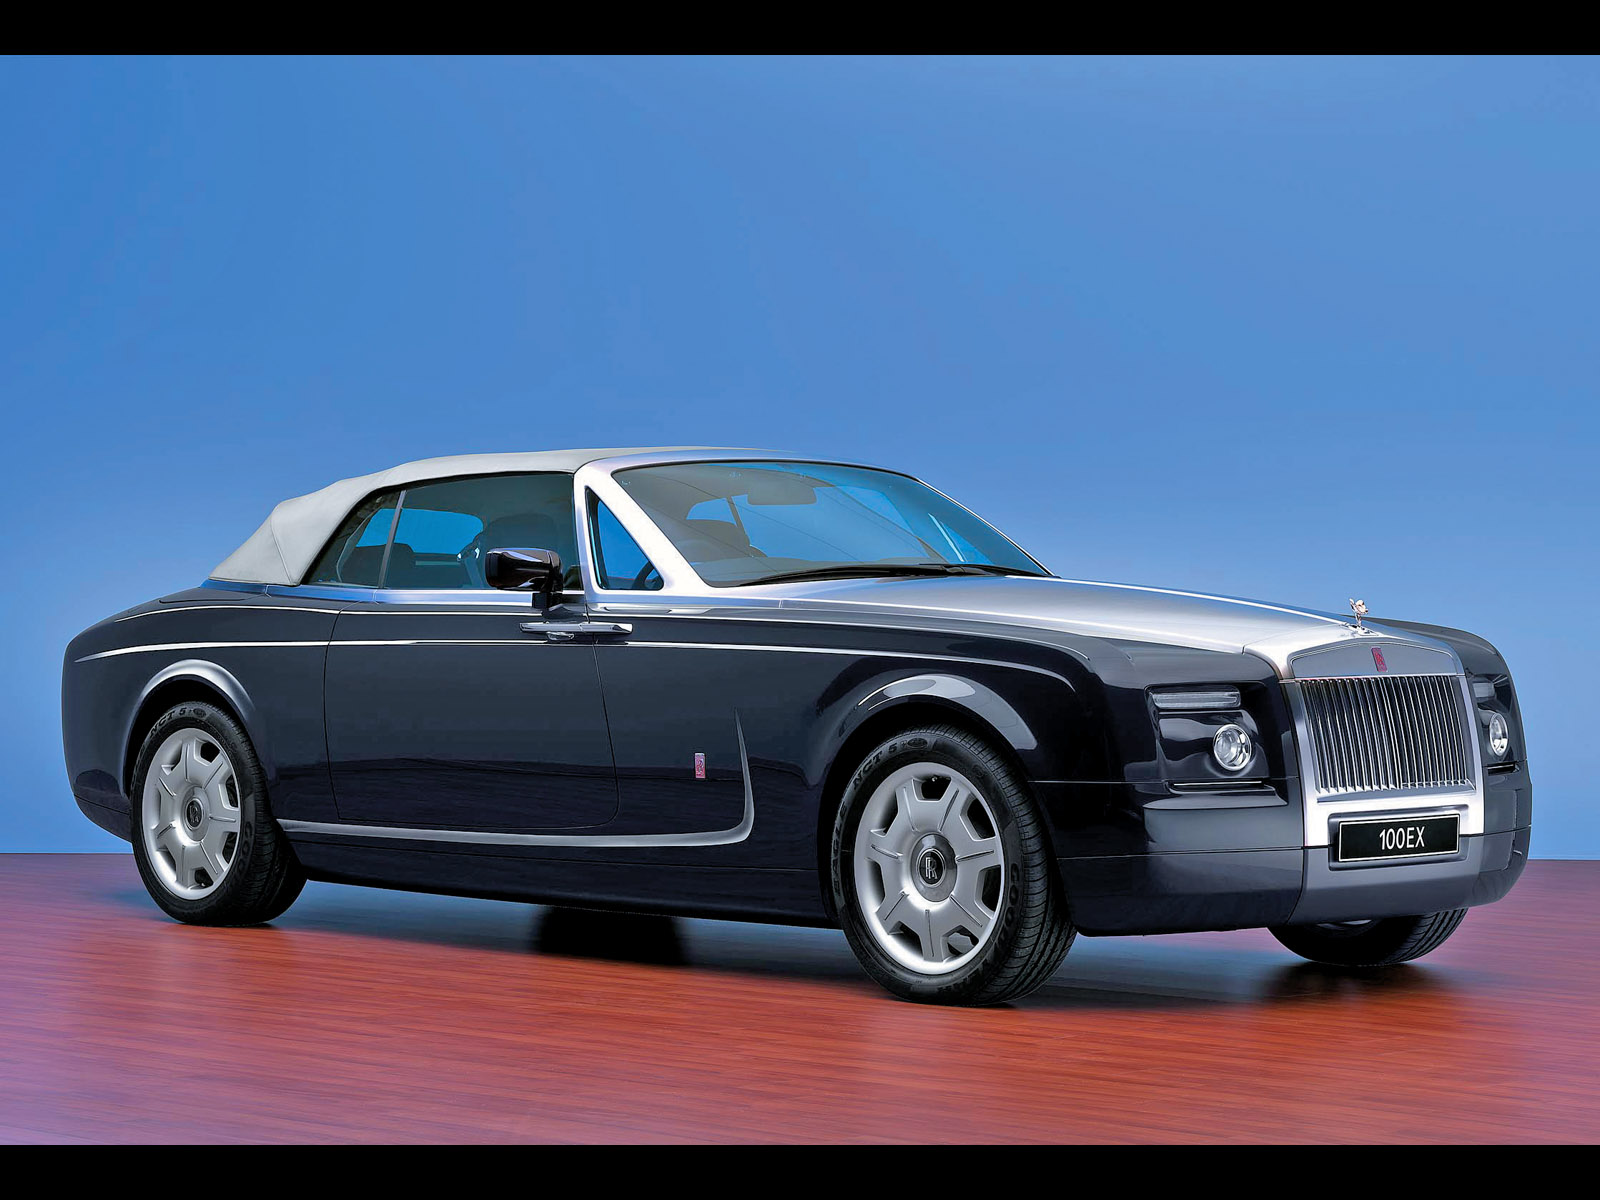 2004 Rolls Royce 100EX Concept Side Angle Top Up Desktop Backgrounds HD